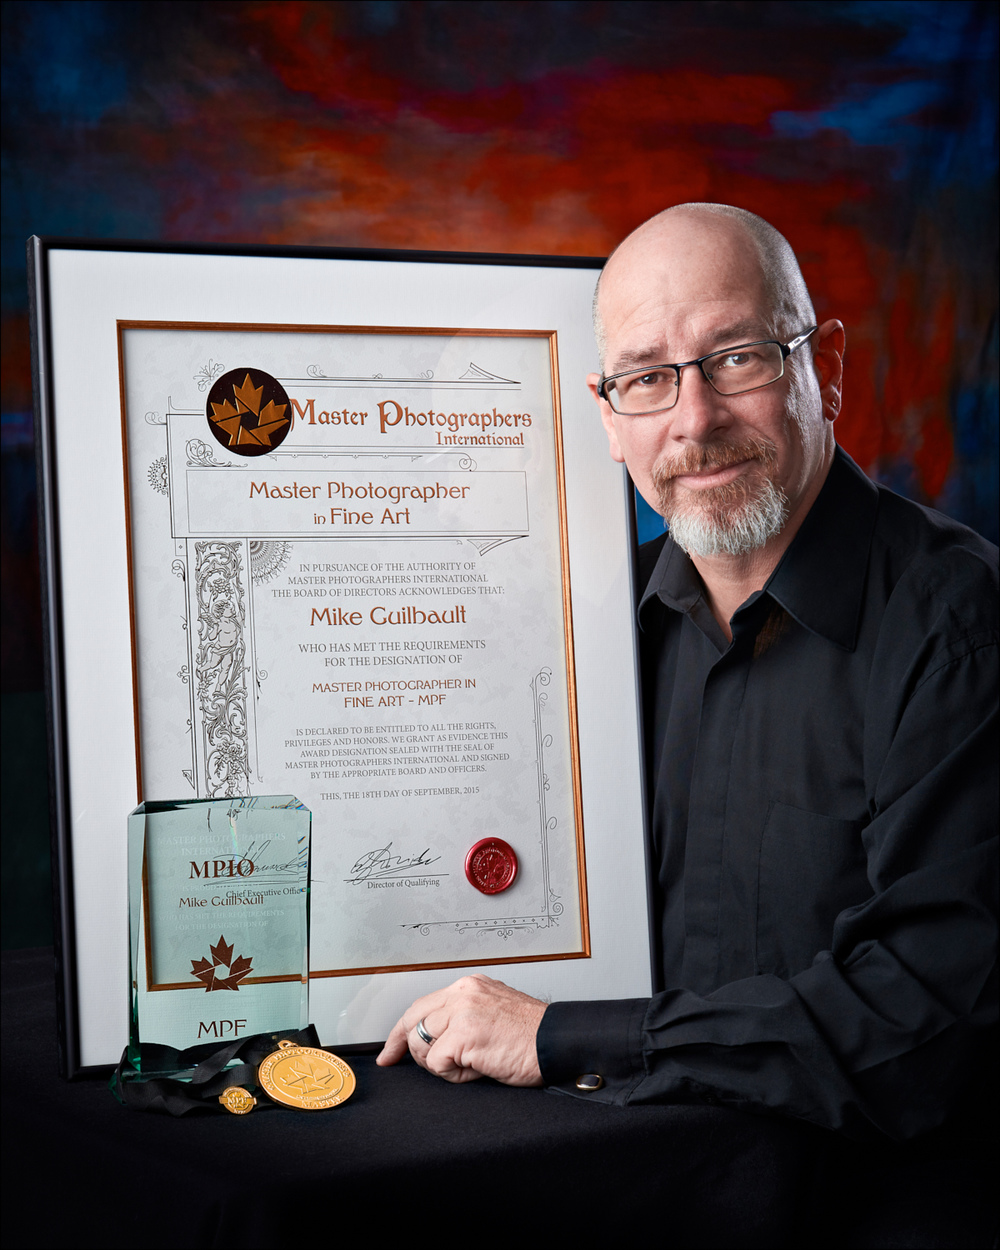 Local Photographer, Mike Guilbault, with his recent Award and Designation.